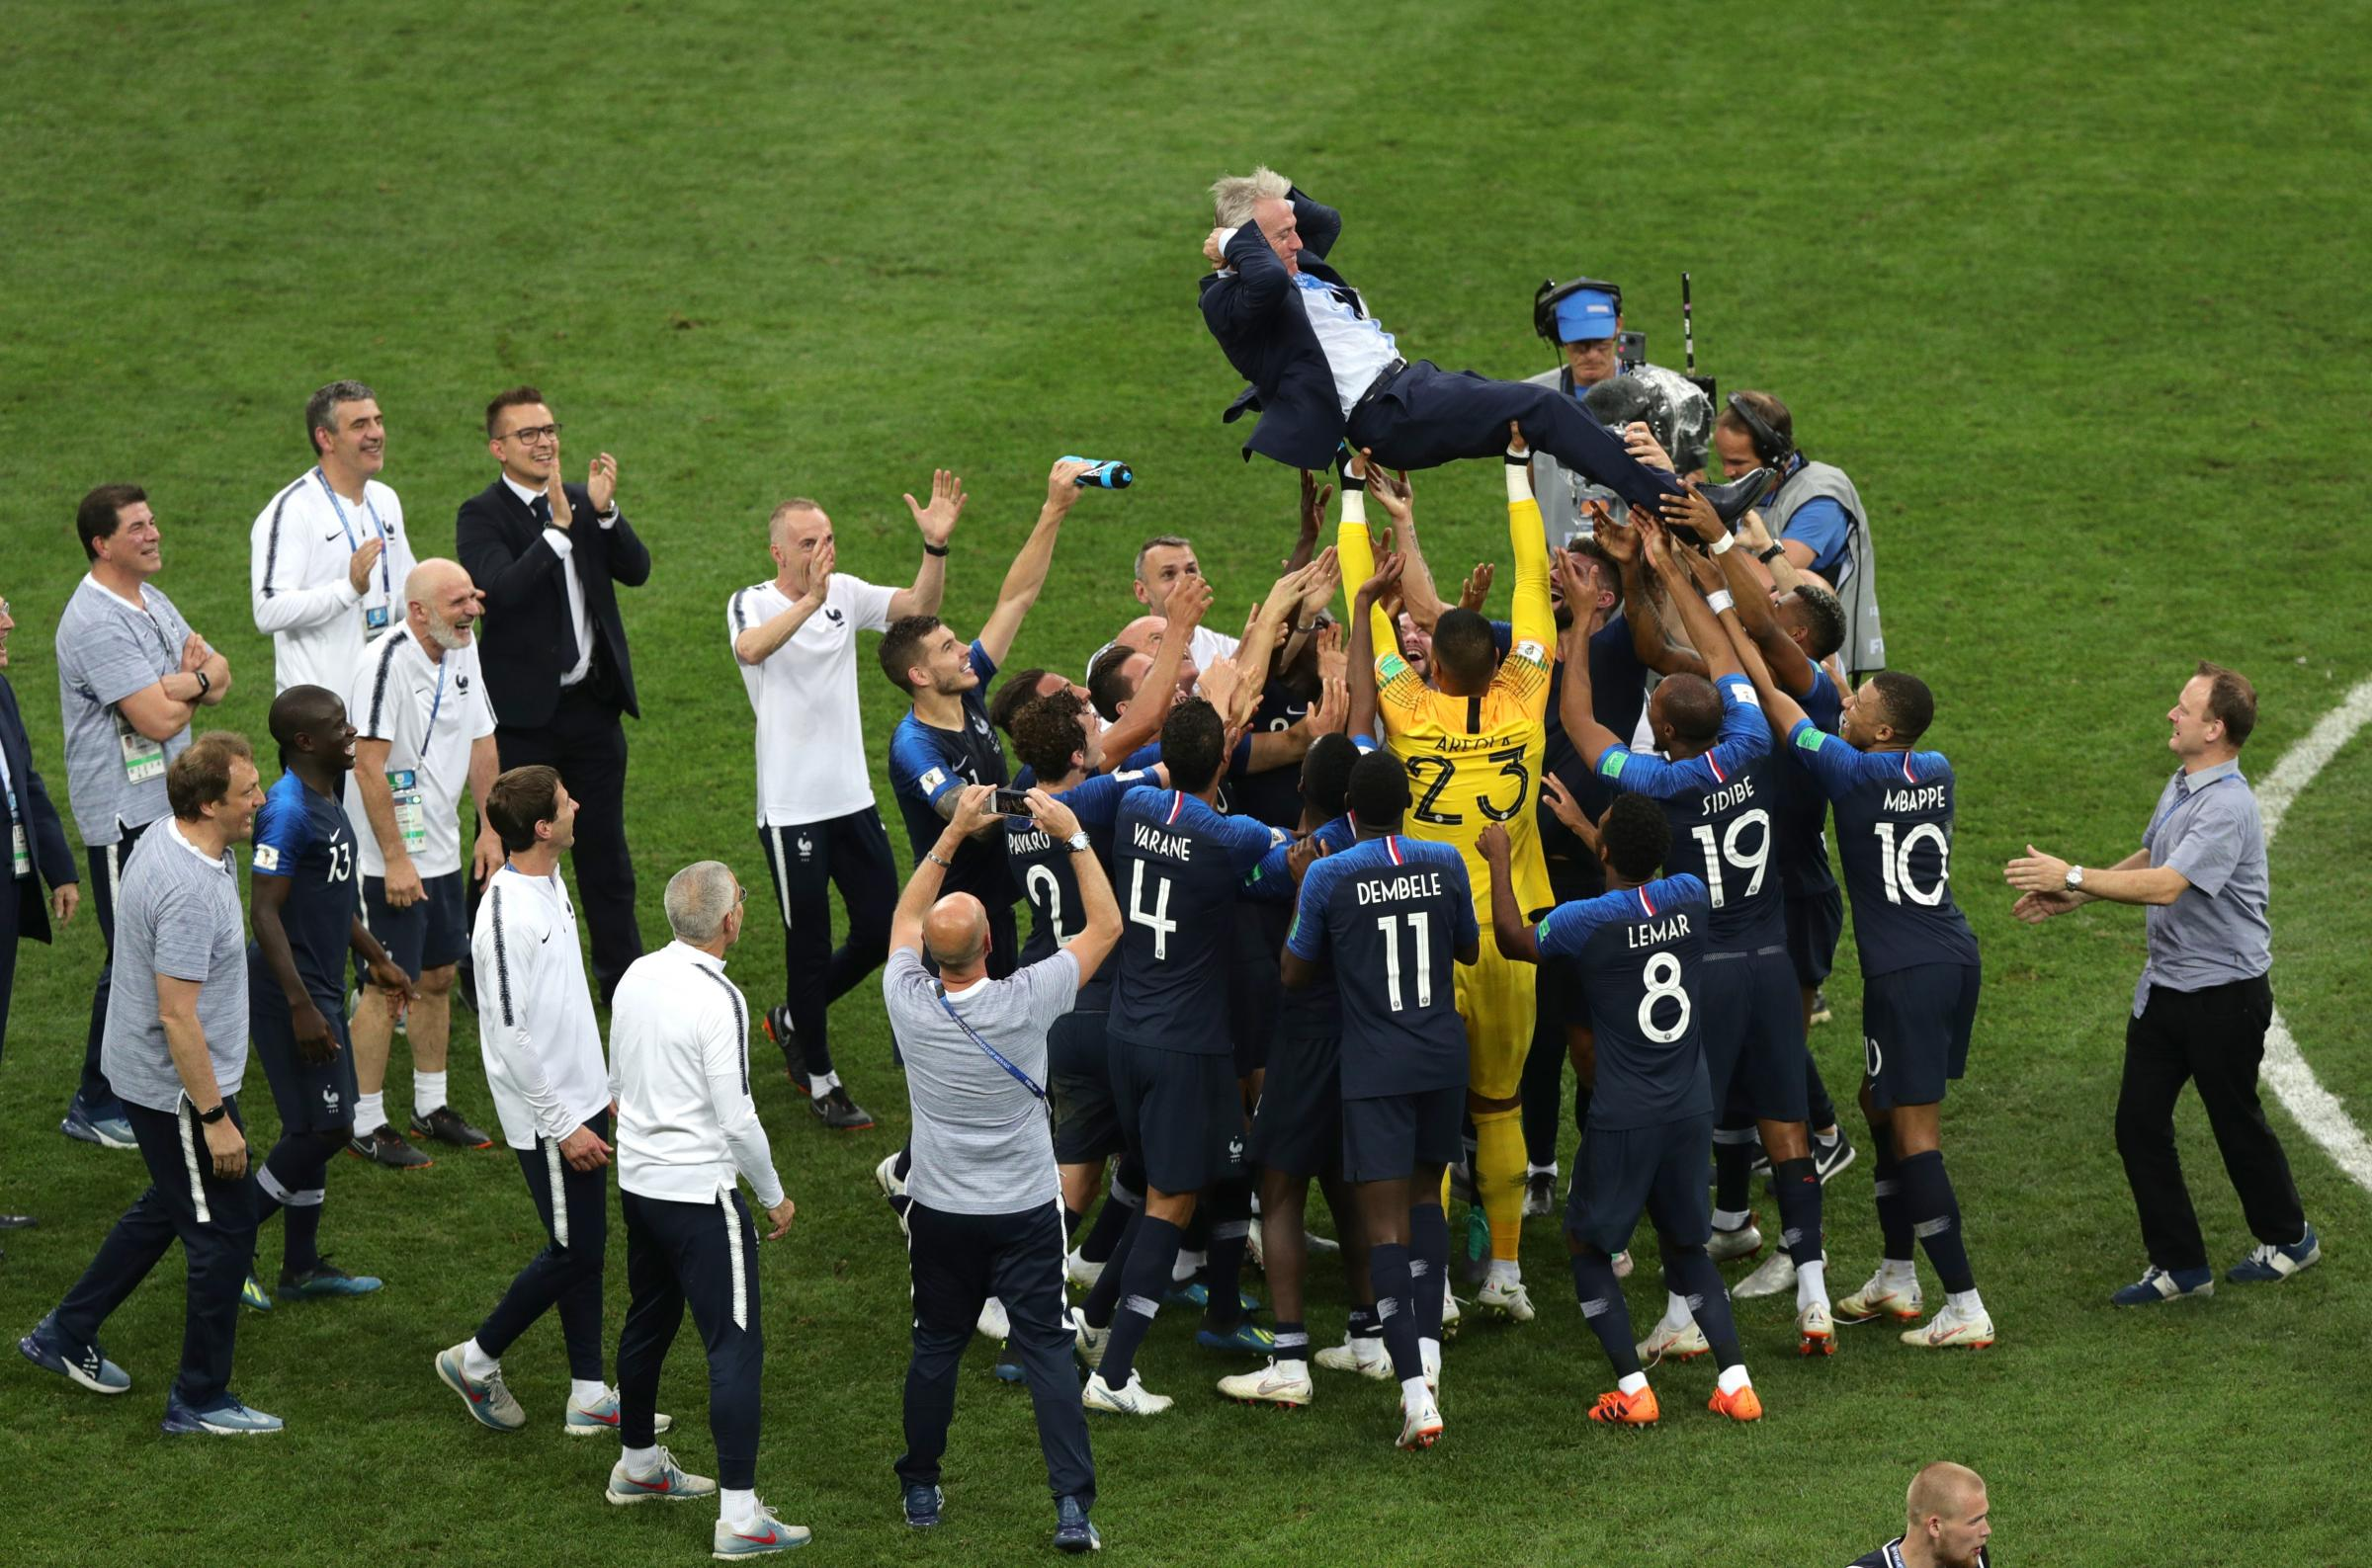 France manager Didier Deschamps is thrown into the air by his players after victory in the World Cup final (Aaron Chown/PA)